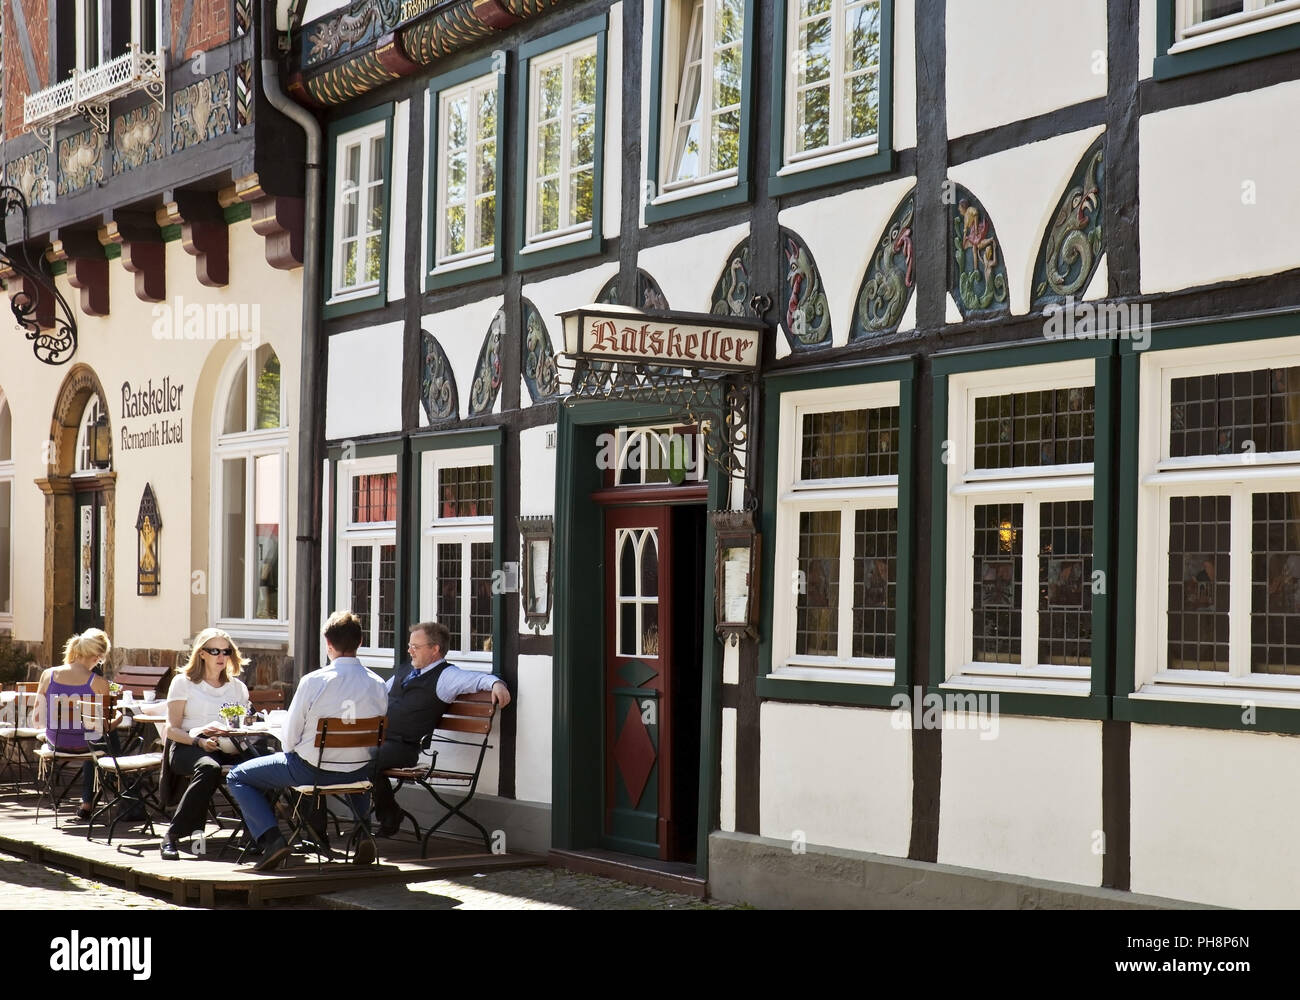 people in a sidewald cafe, old town, Wiedenbrueck - Stock Image